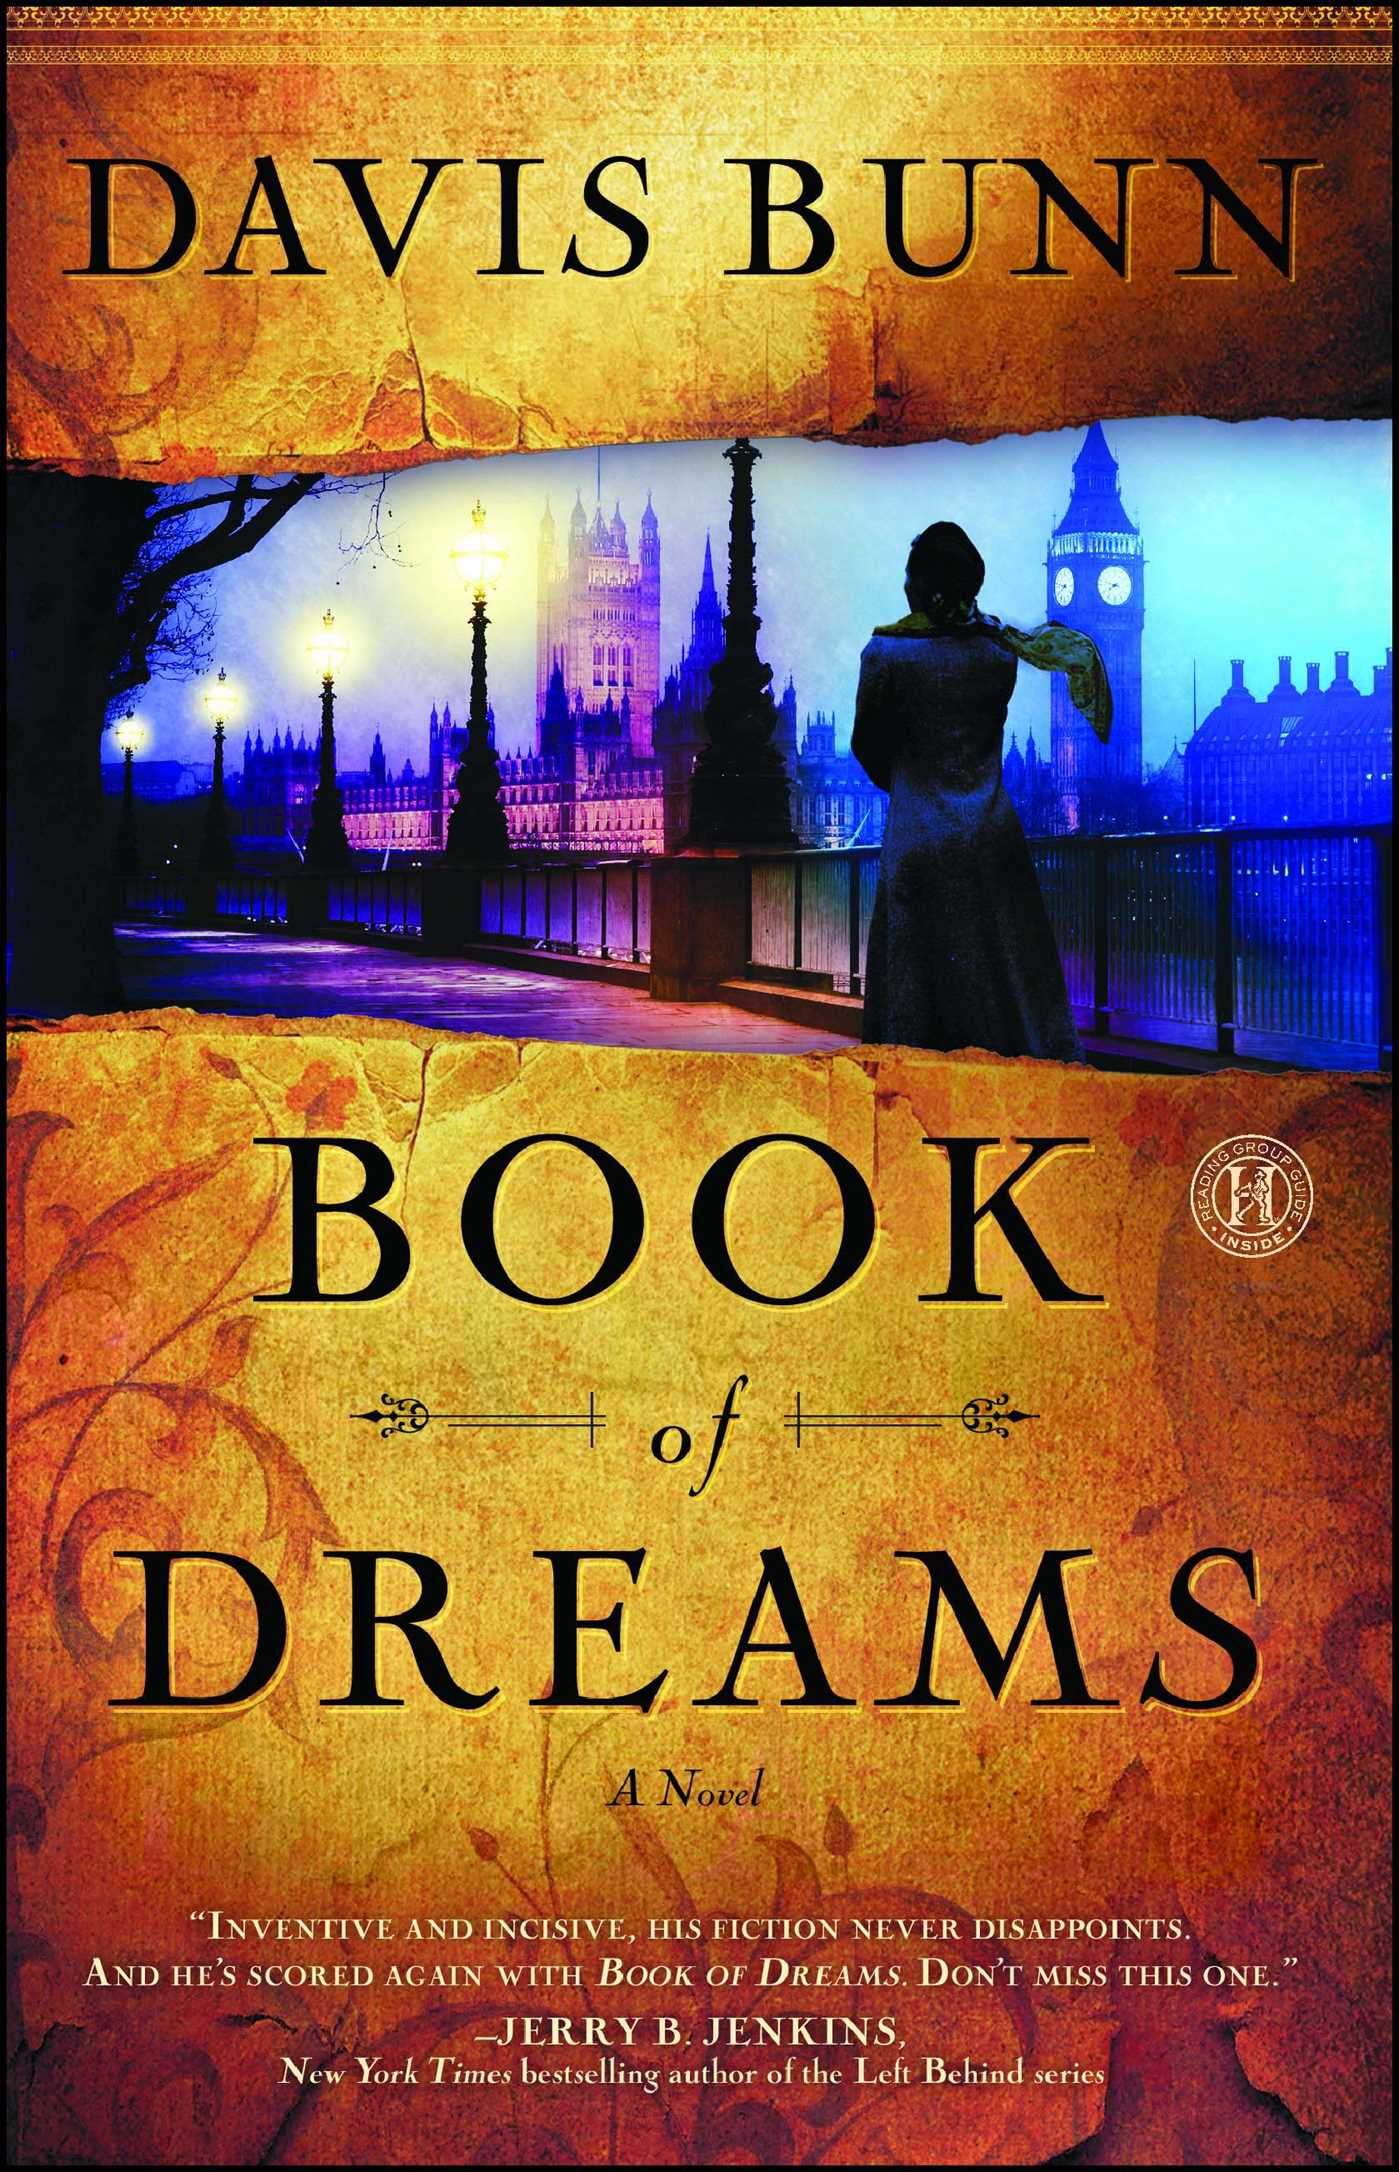 Book of dreams 9781451610550 hr